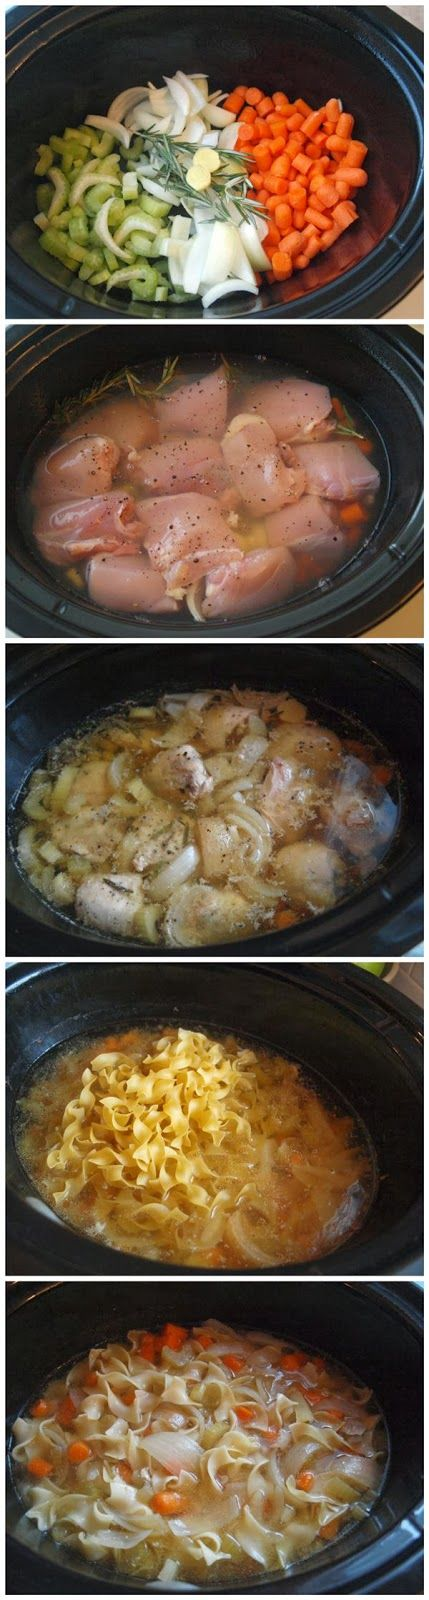 Crockpot Chicken Noodle Soup - Recipe Favorite